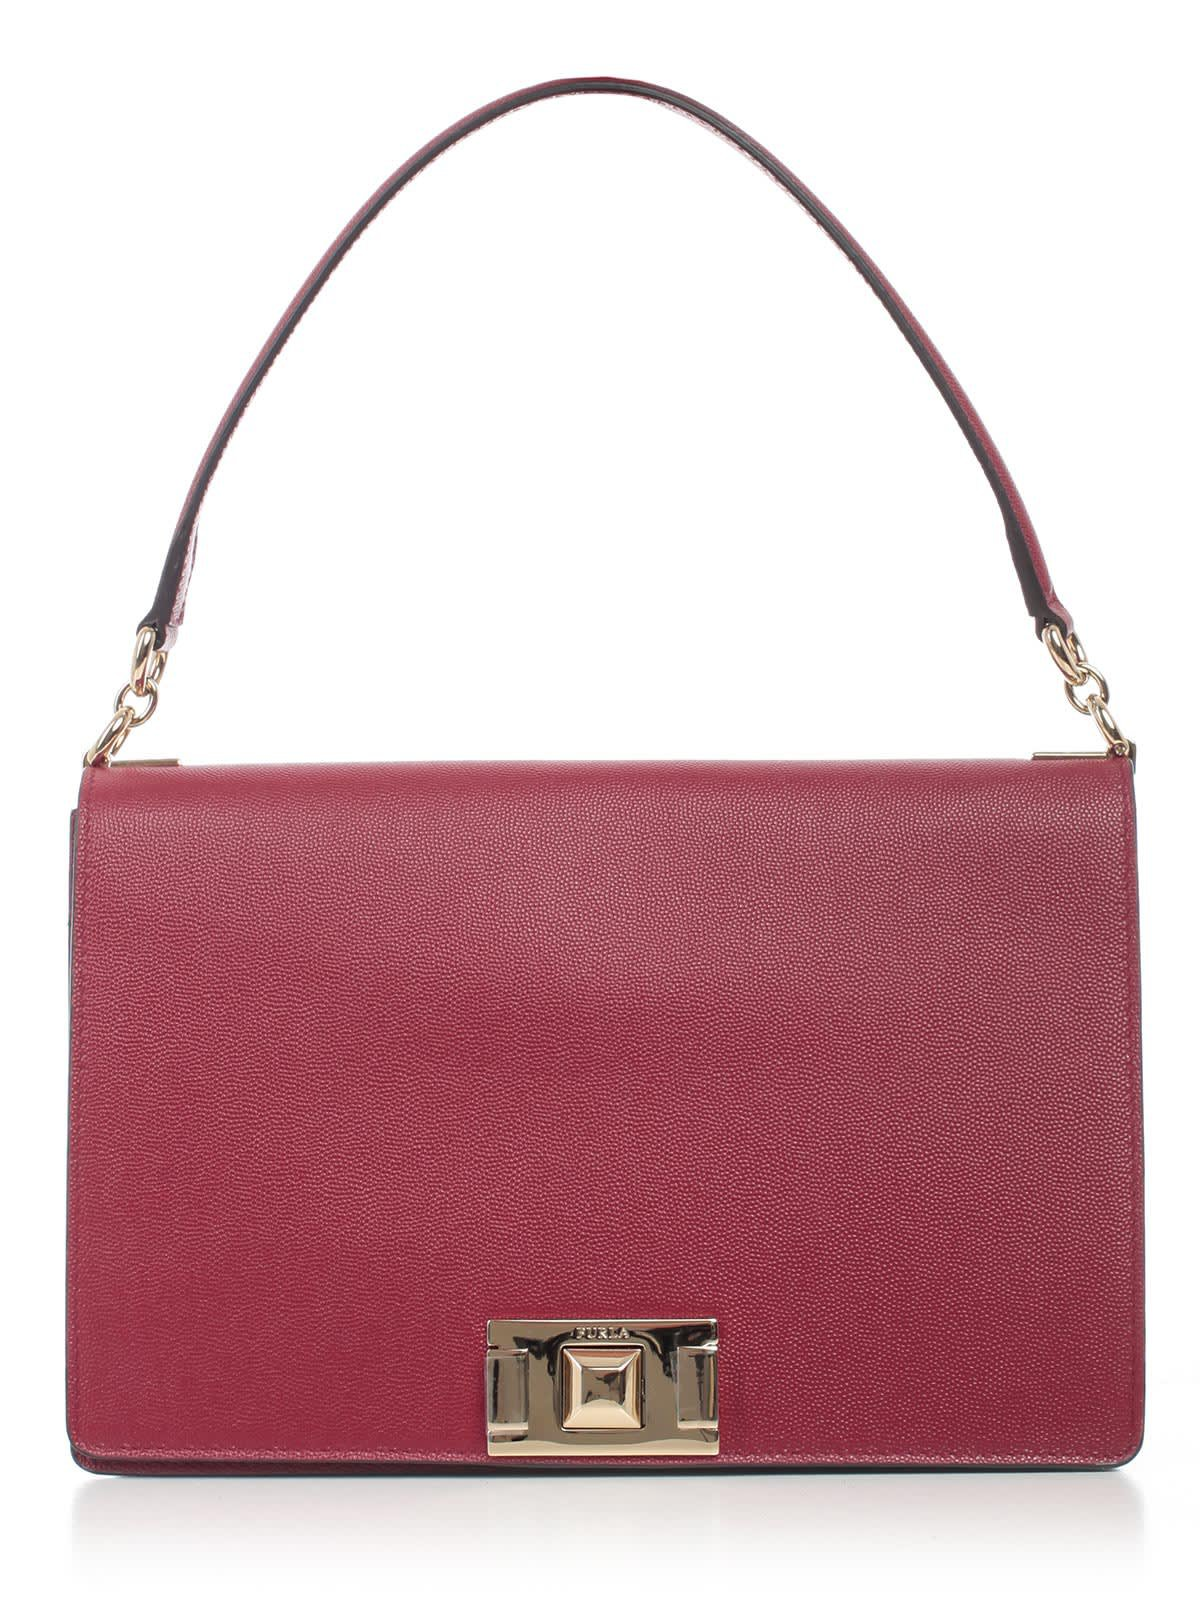 Furla Bag Mimi Shoulder Bag